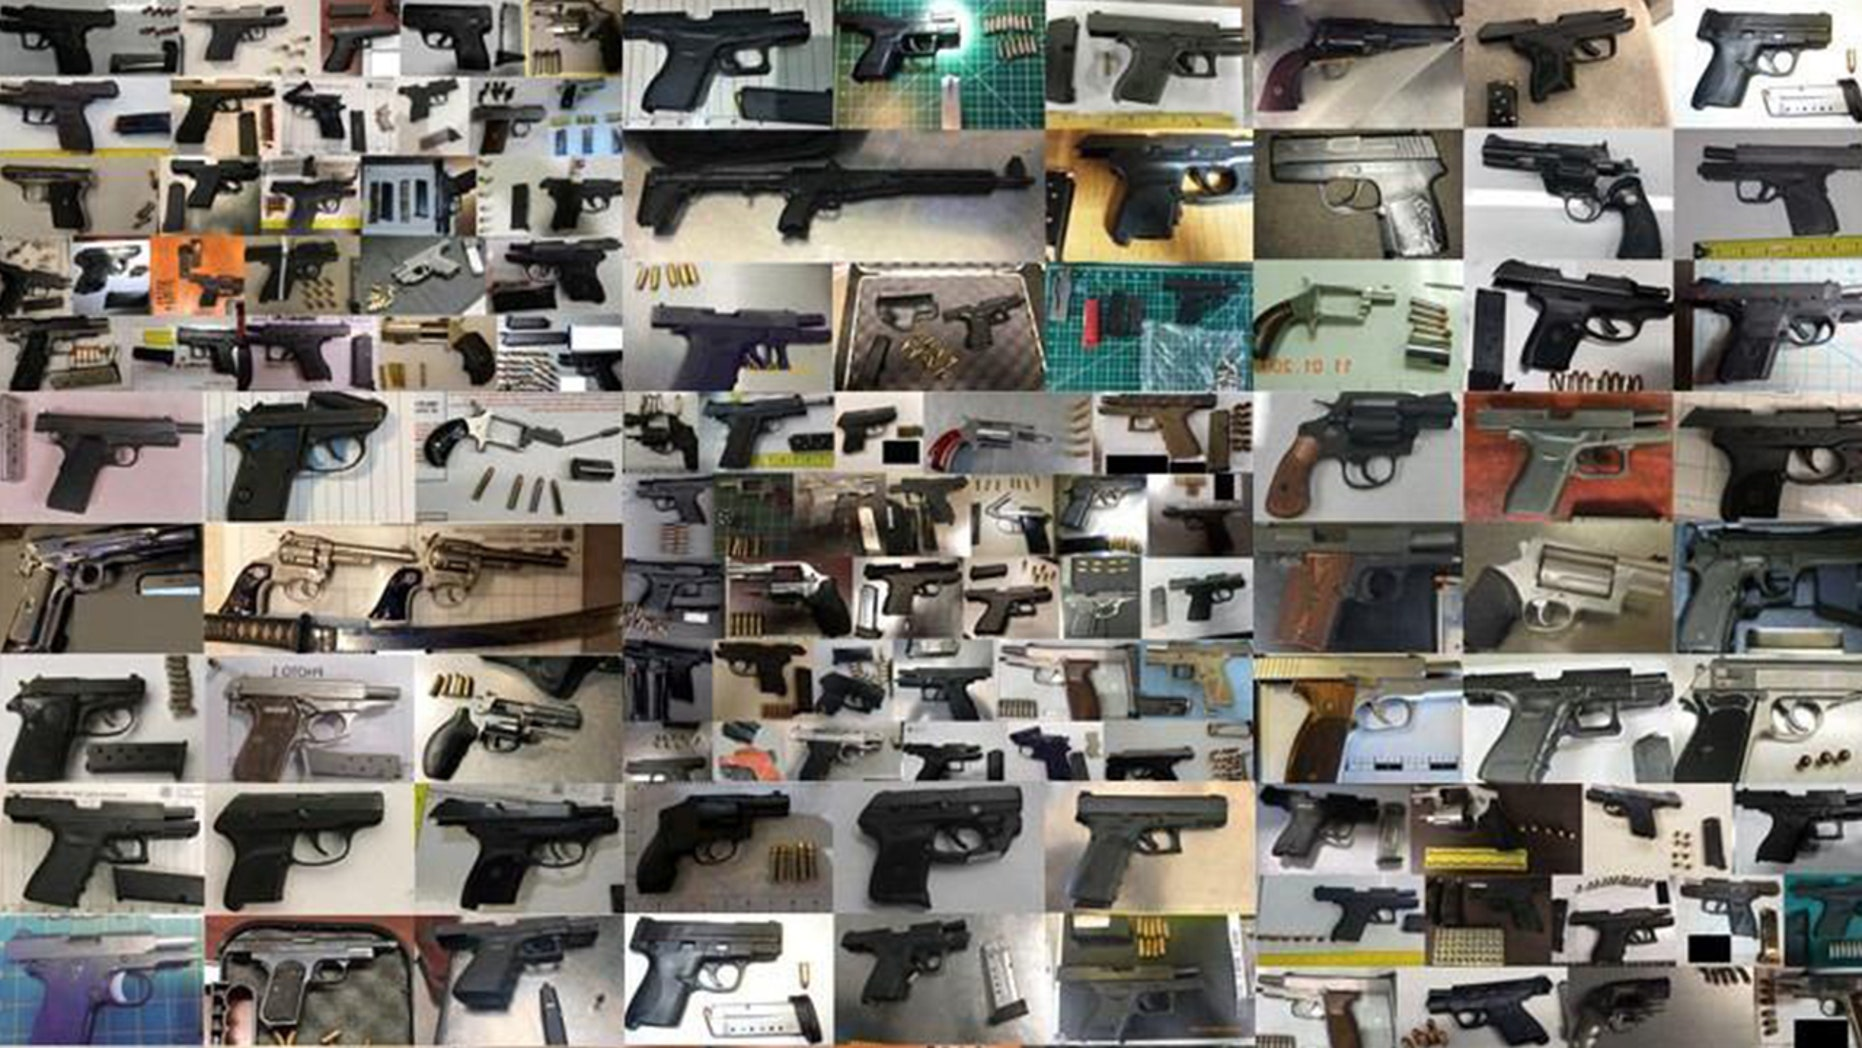 TSA confiscates record number of guns in 2018